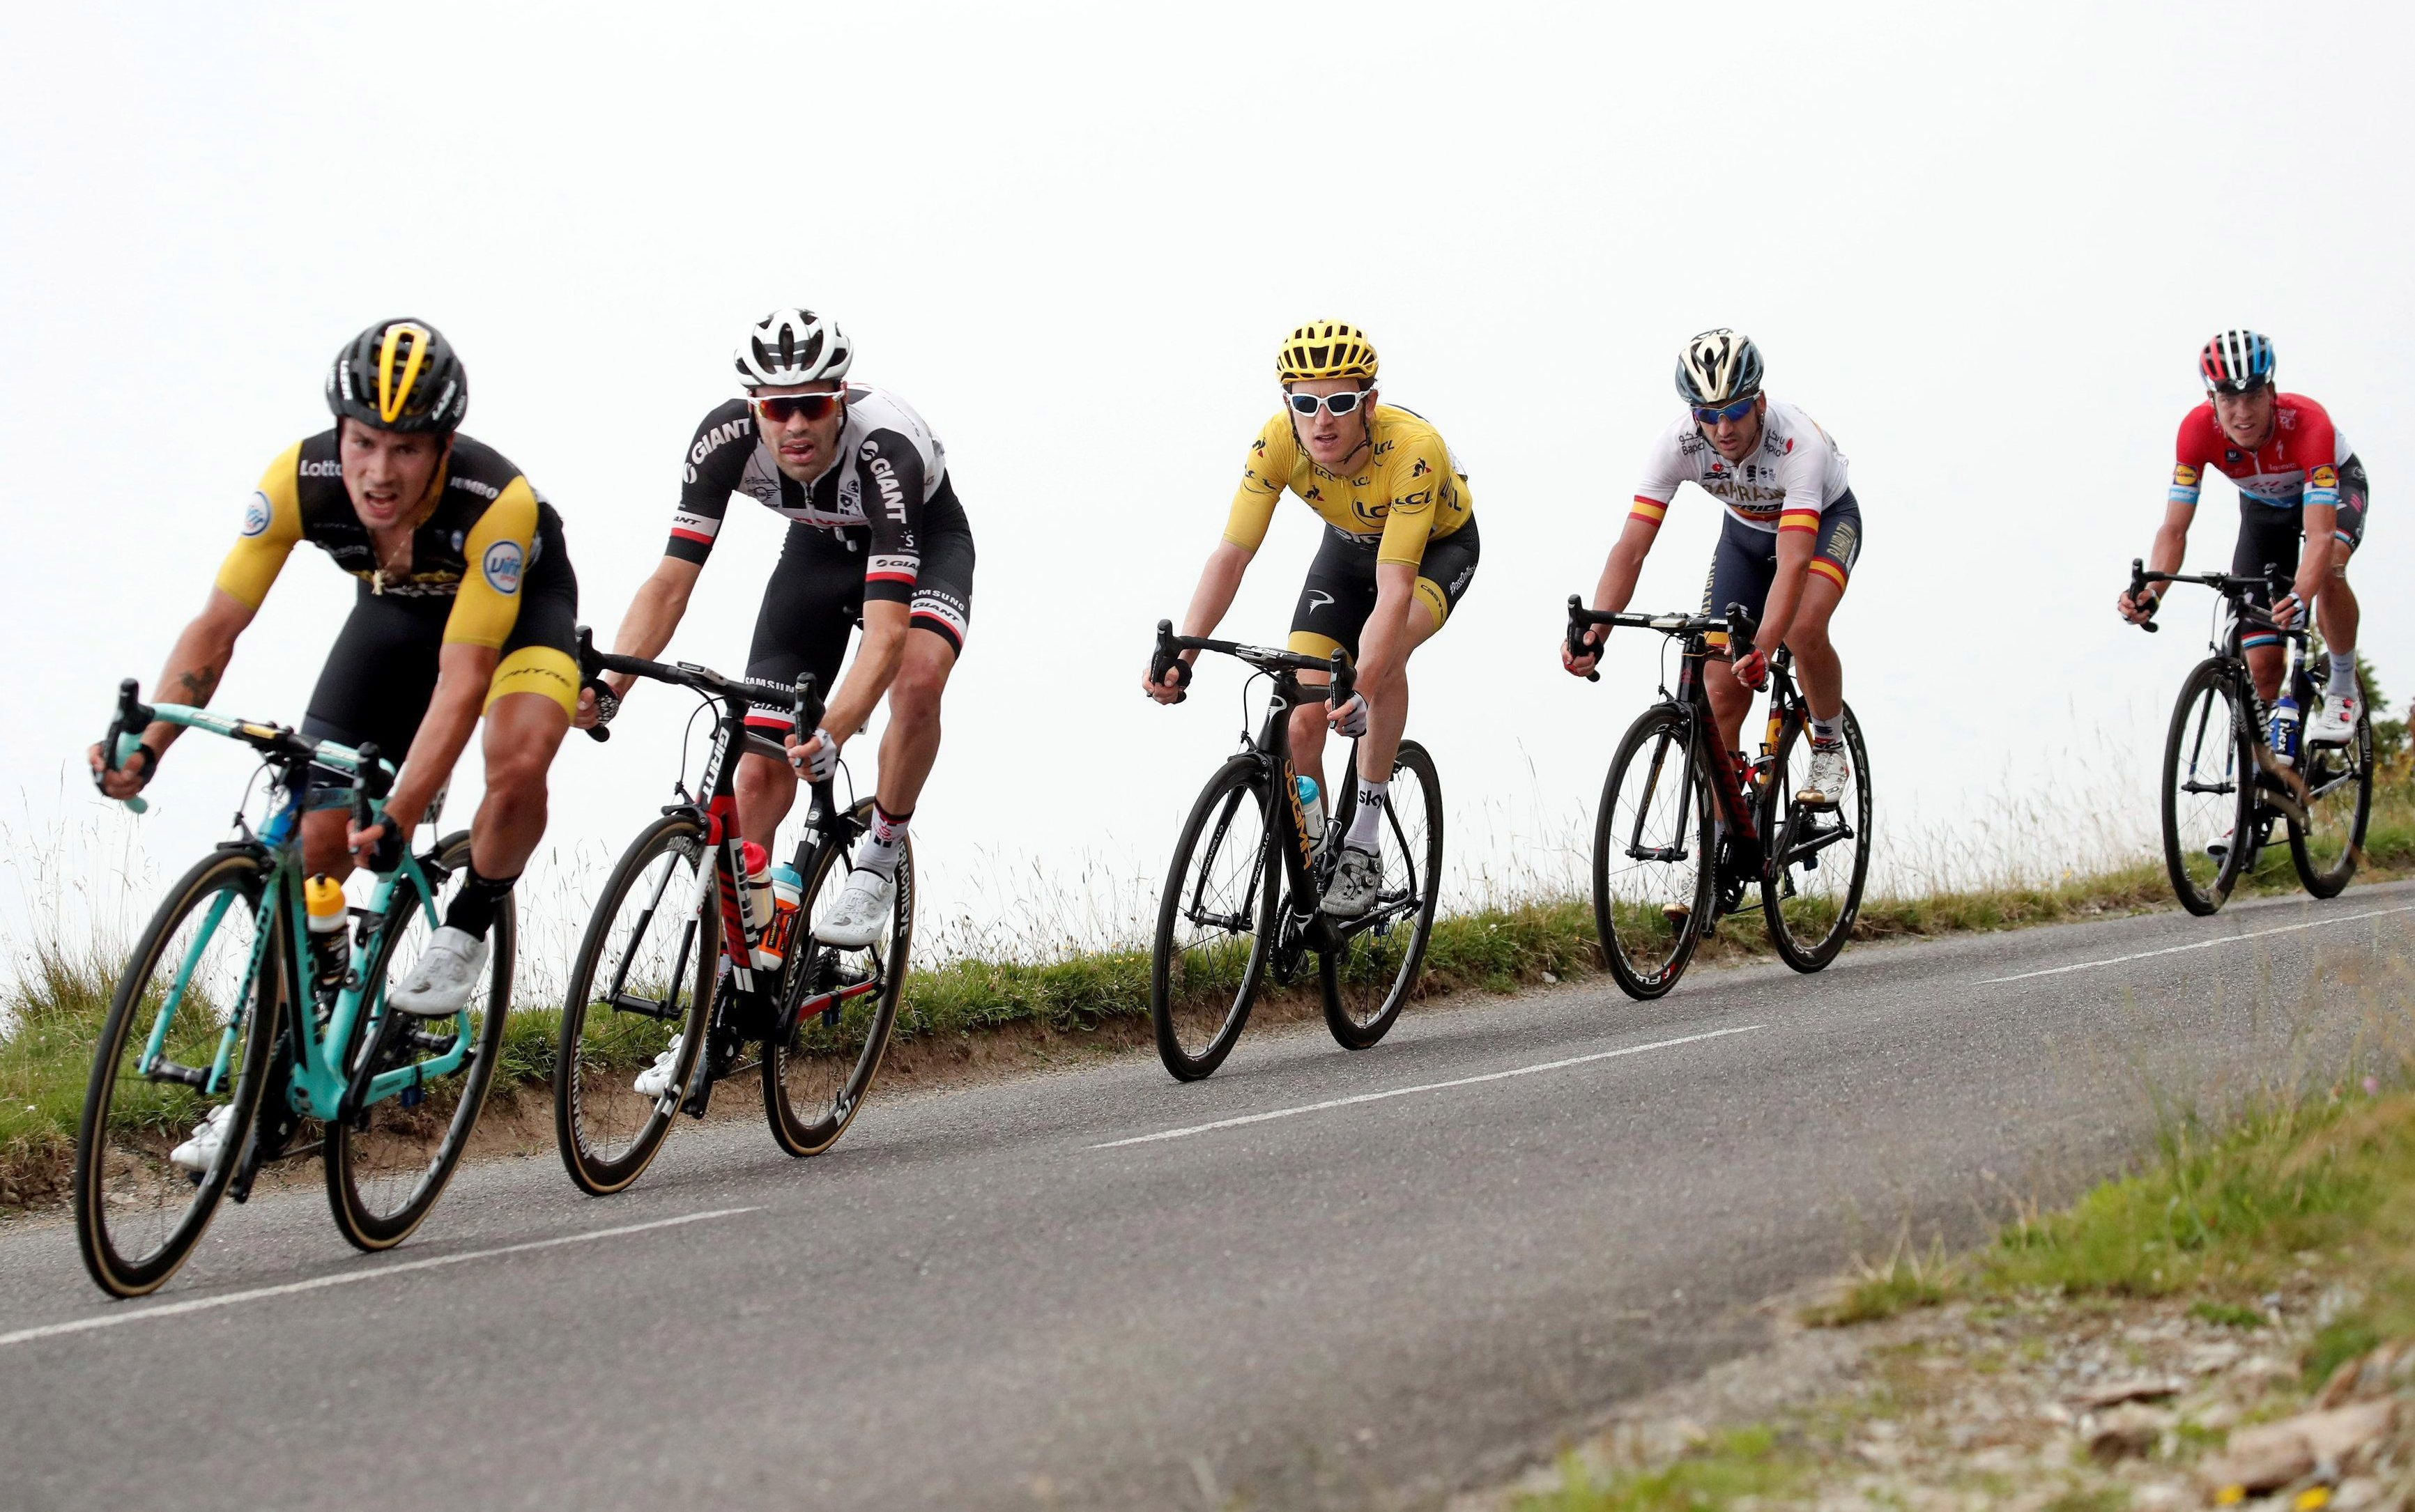 Welsh hero Geraint Thomas, front, is approaching the final hurdle as he bids for his first Tour de France crown